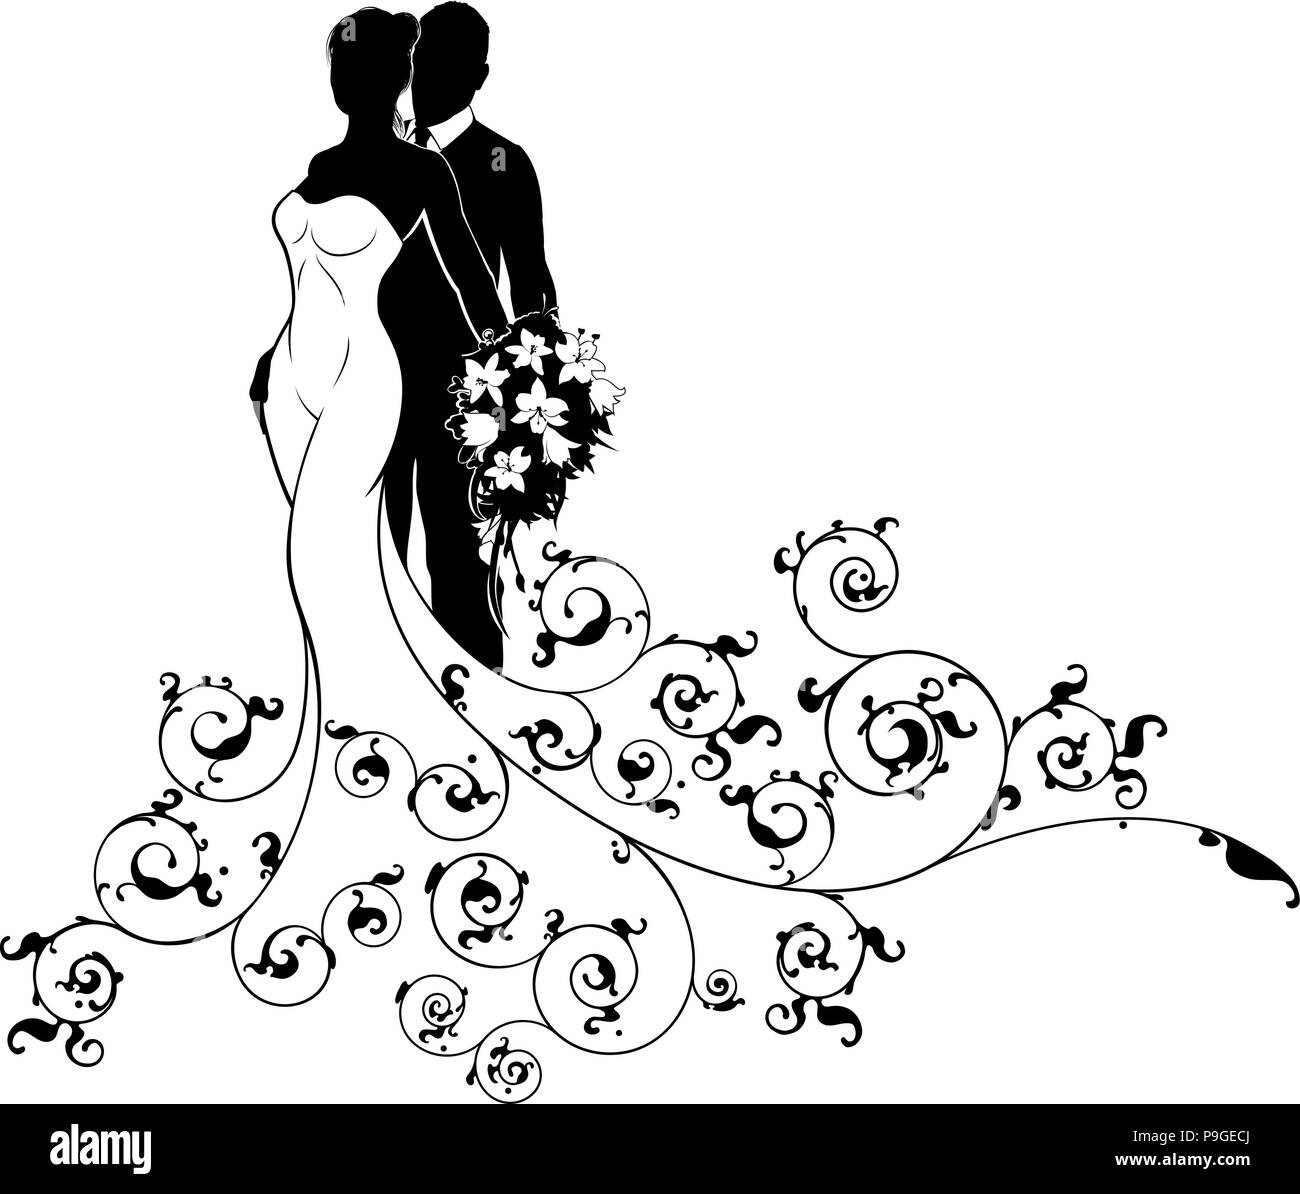 Bride and groom couple wedding silhouette abstract stock vector art bride and groom couple wedding silhouette abstract junglespirit Gallery